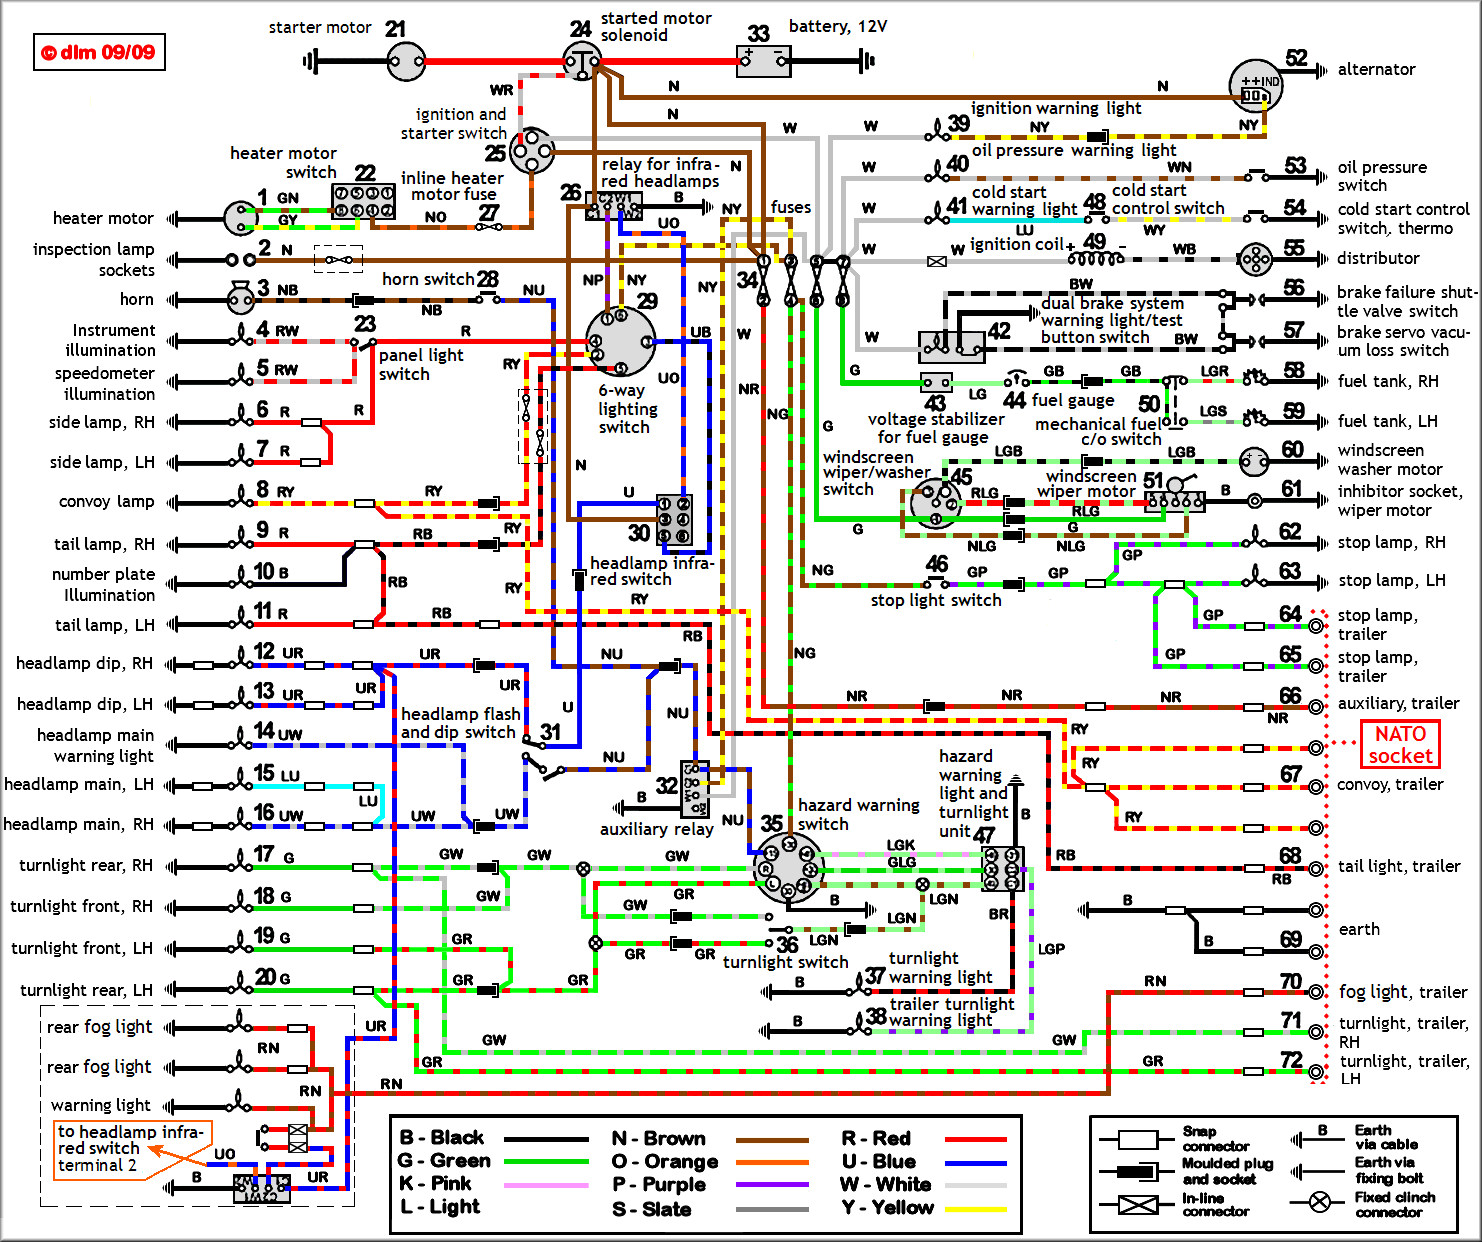 Wiring Diagram New 300tdi wiring diagram chinese 110 atv wiring diagram \u2022 free wiring td5 engine wiring harness at aneh.co